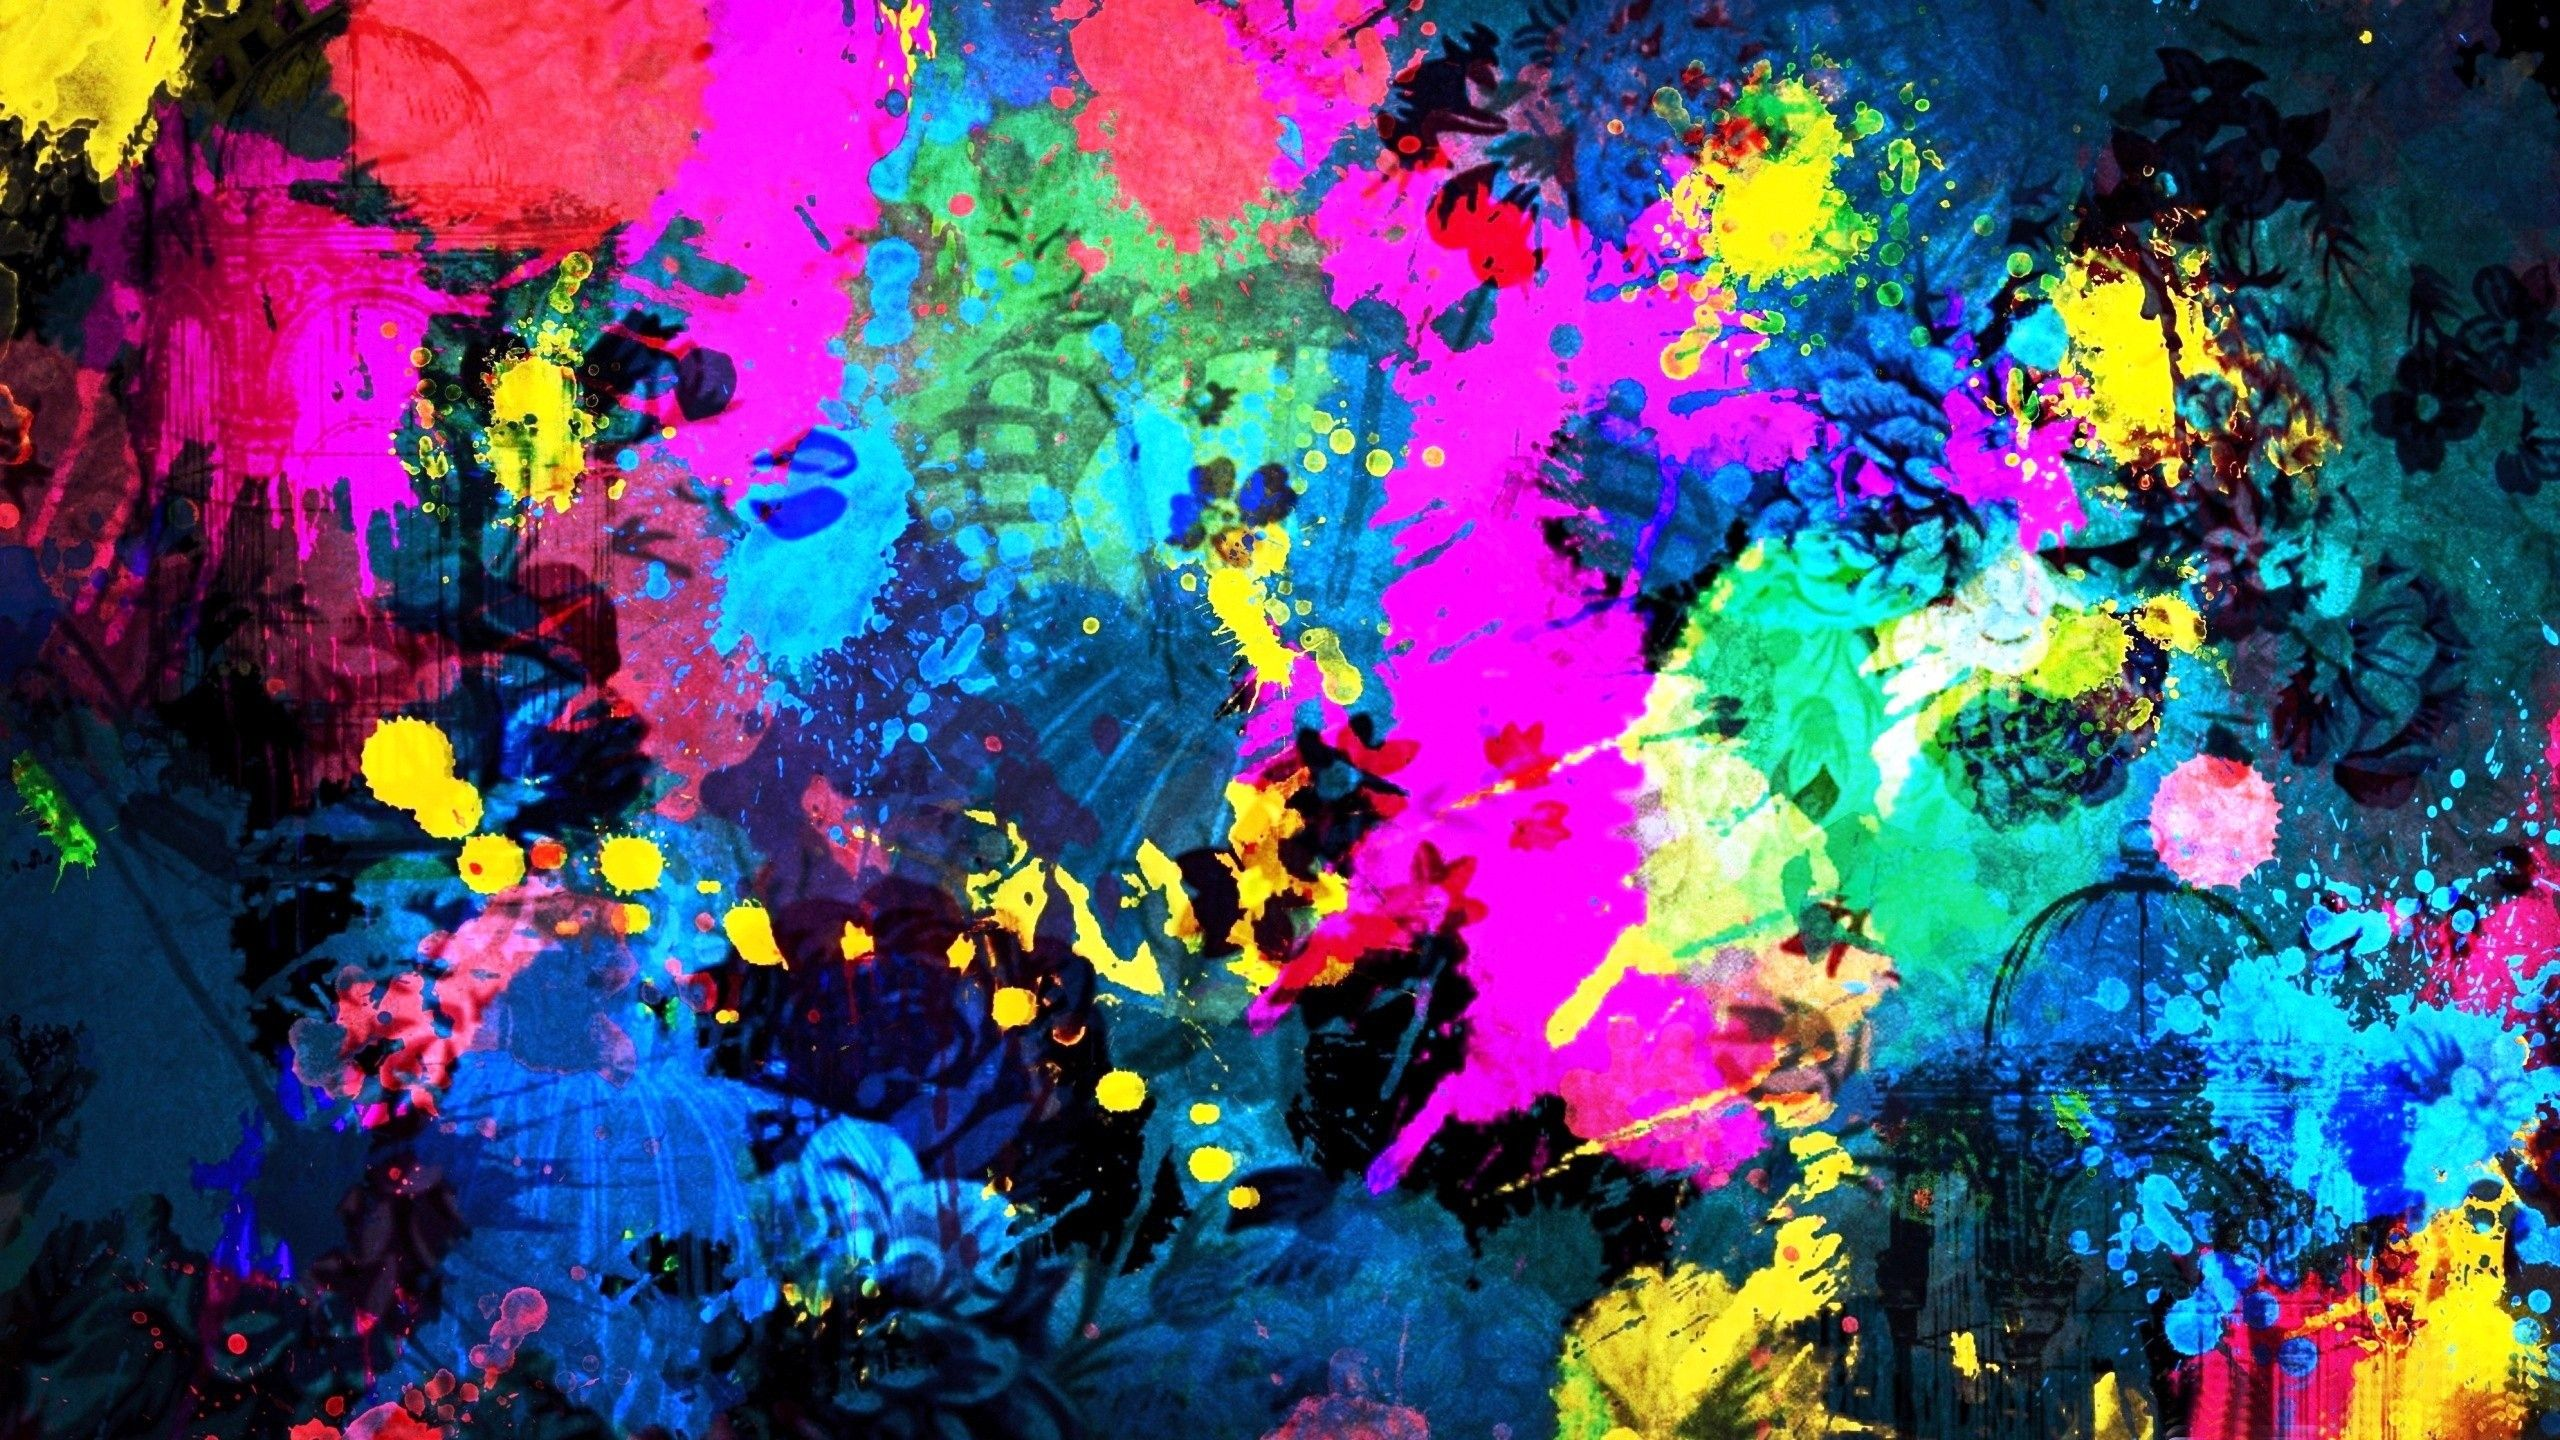 Artistic Abstract Wallpapers High Quality Resolution